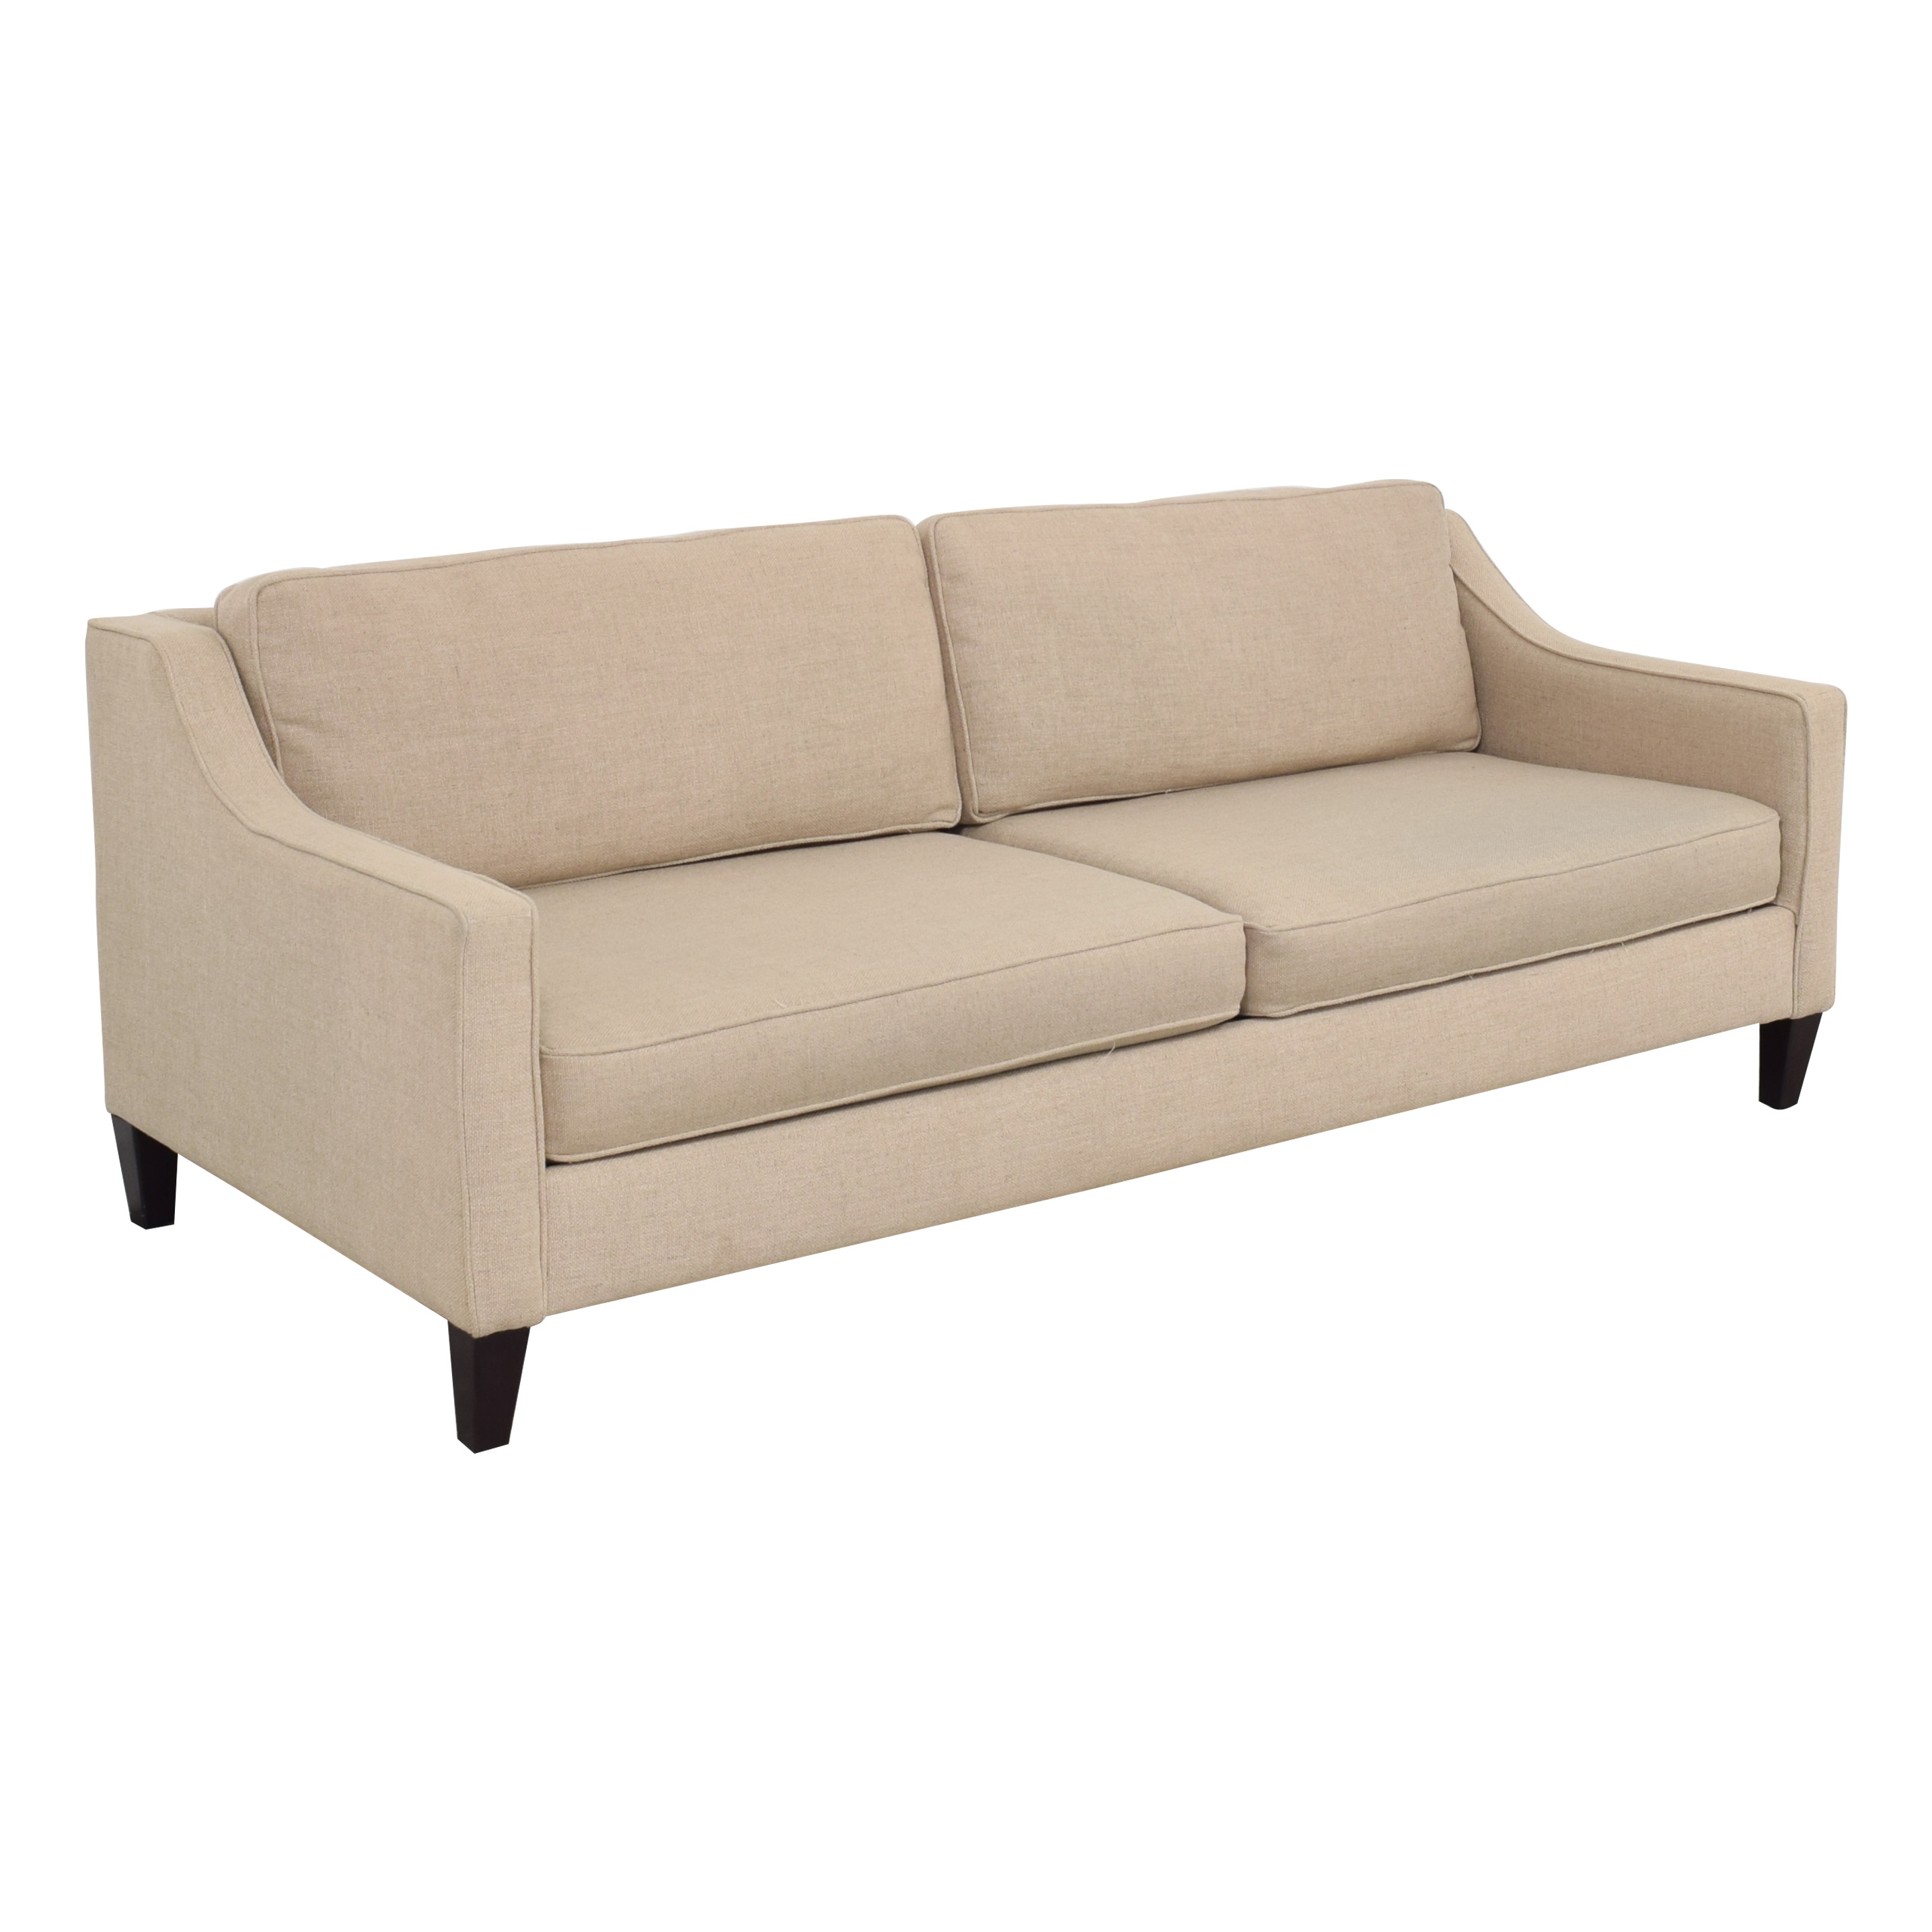 West Elm West Elm Paidge Grand Sofa